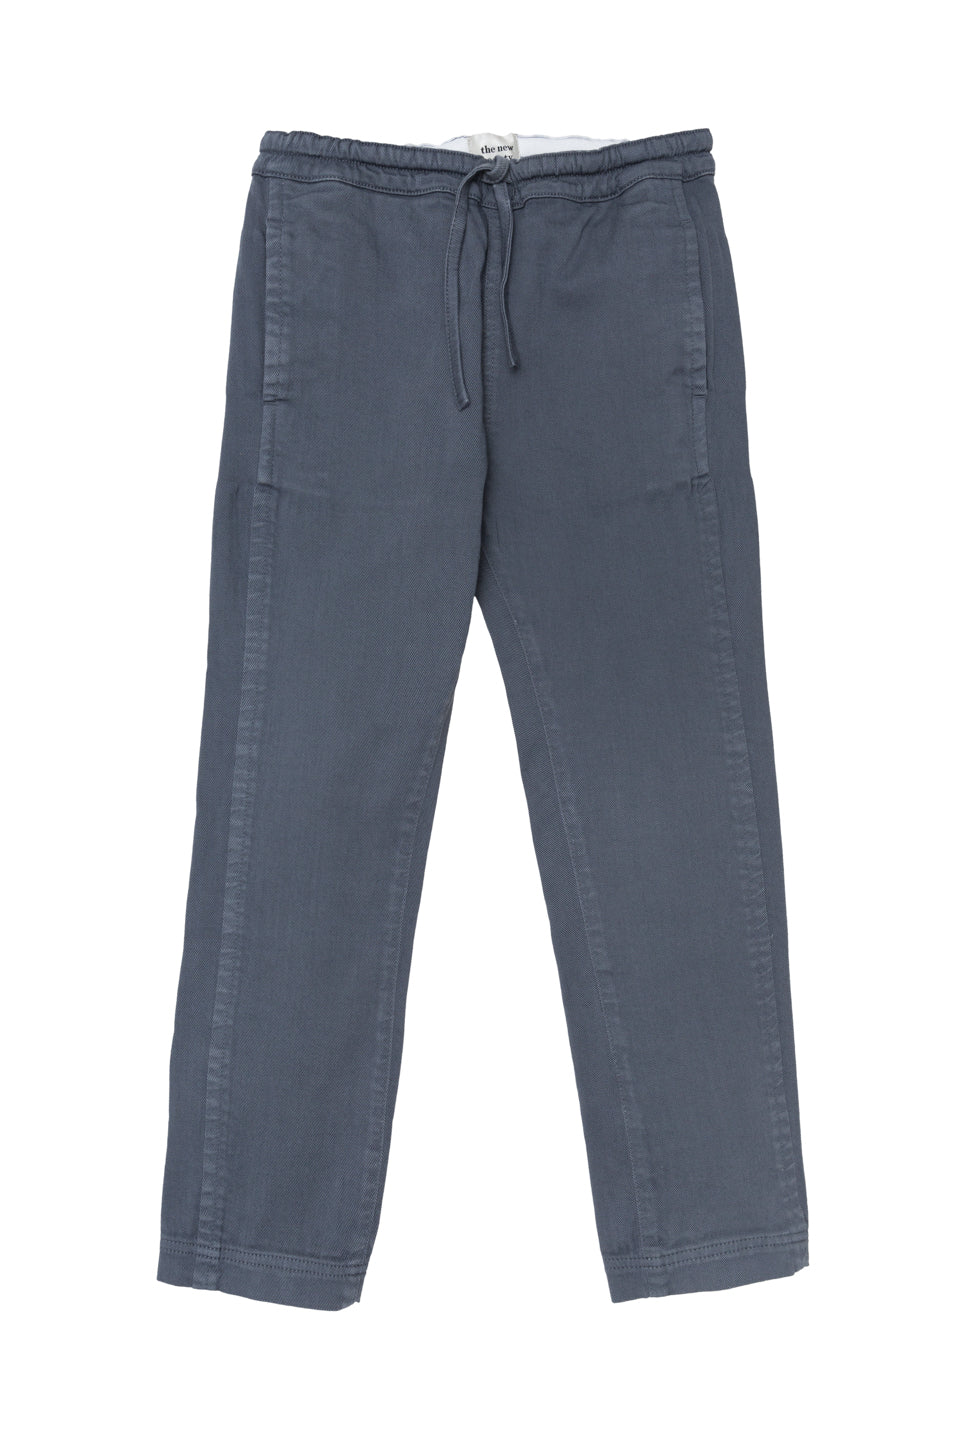 Alexander Pants - Blue Grey